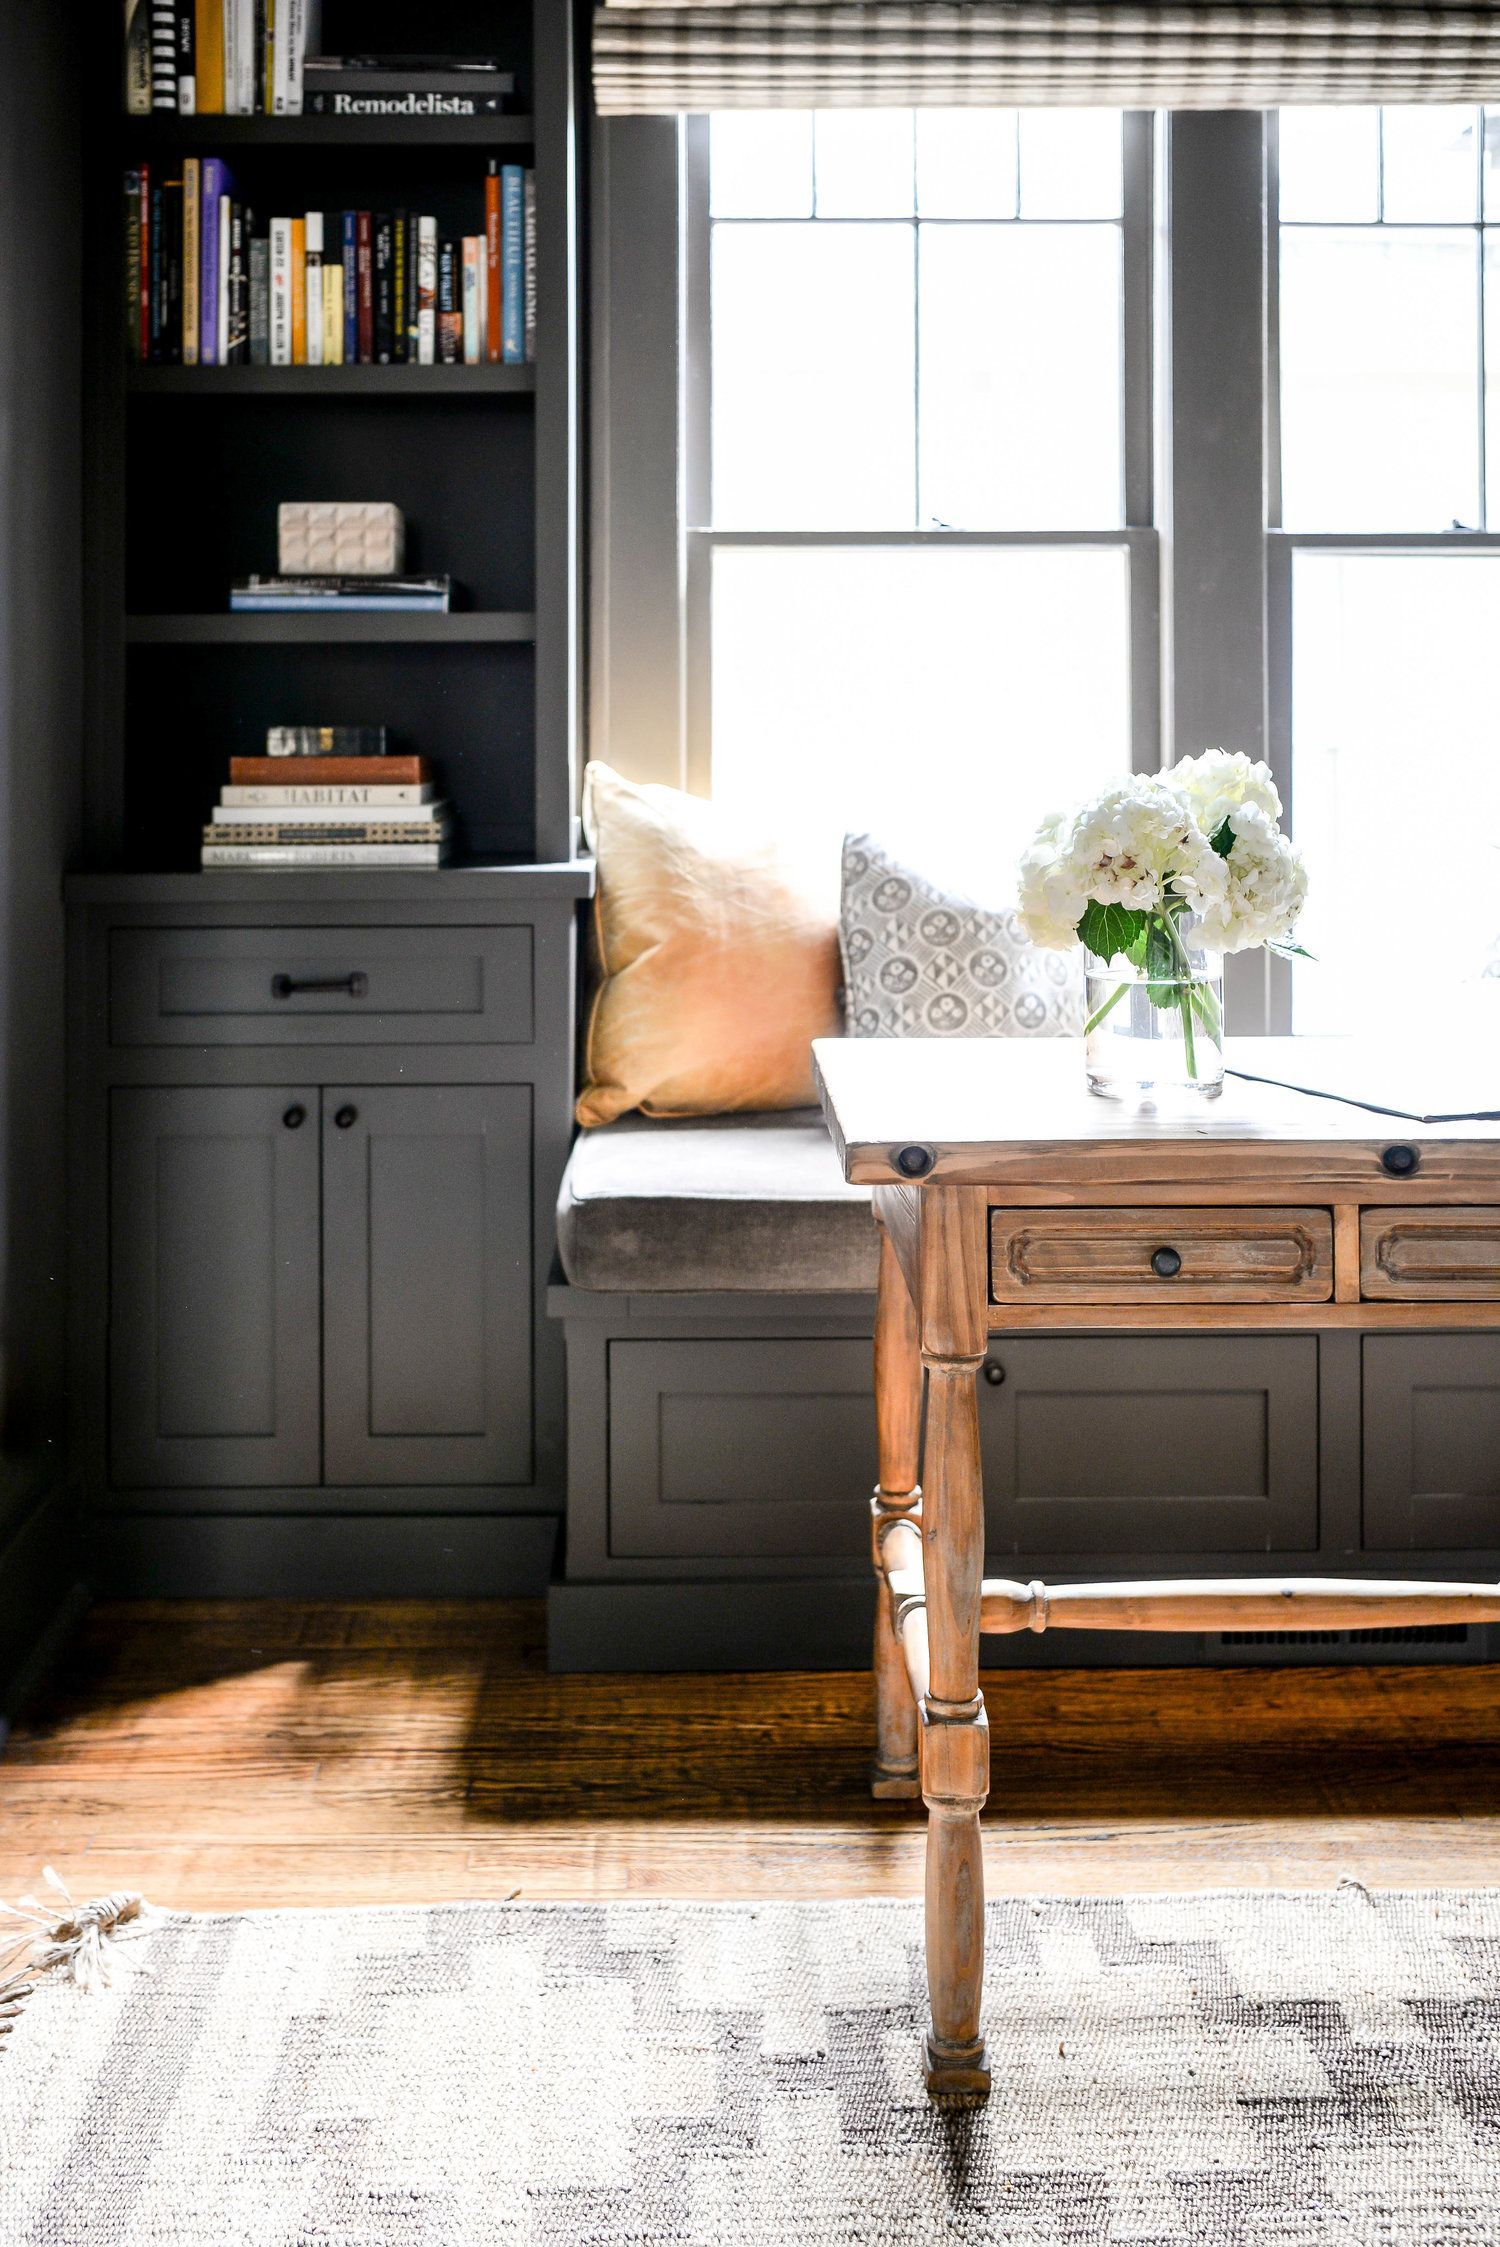 What An Amazing Home Office With Dark Built Ins Painted The Same Color As The Walls Rustic Wood Traditional Desk W Home Office Design Office Built Ins Home